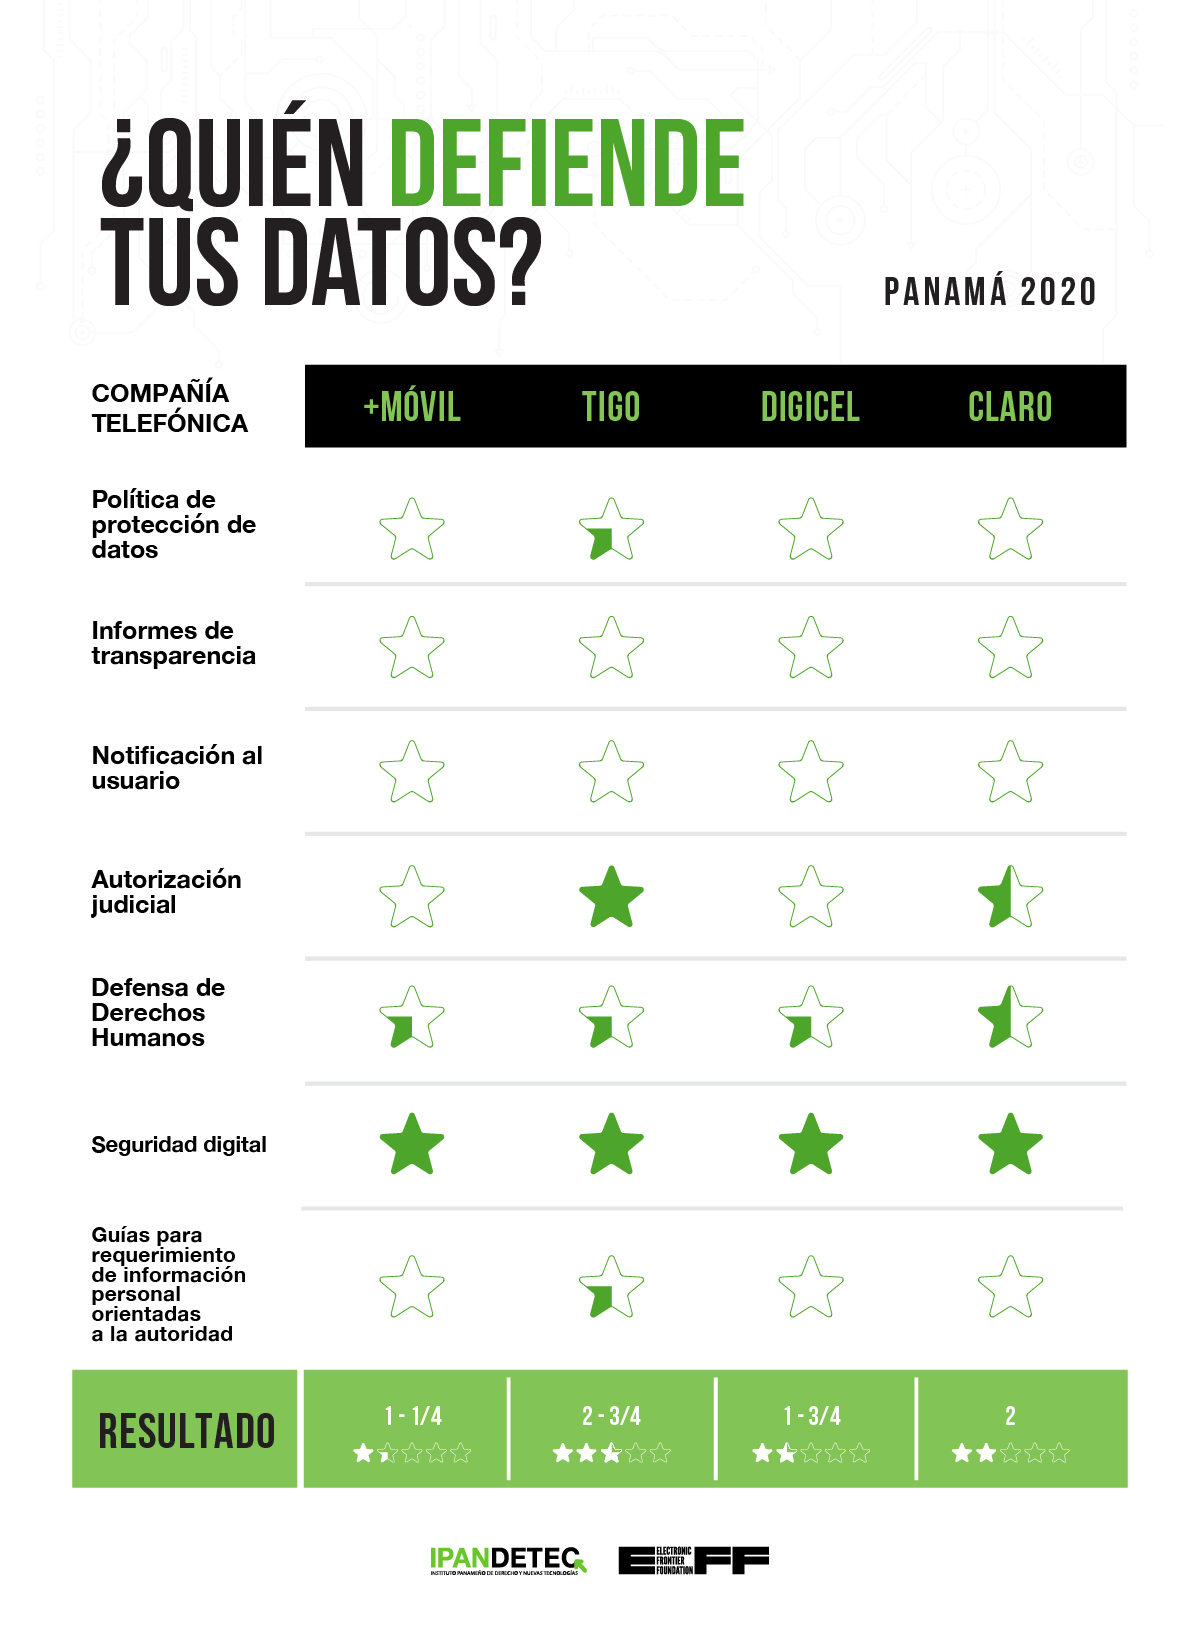 IPANDETEC's Report on Panama's ISPs Show Improvements But More Work Needed to Protect Users' Privacy